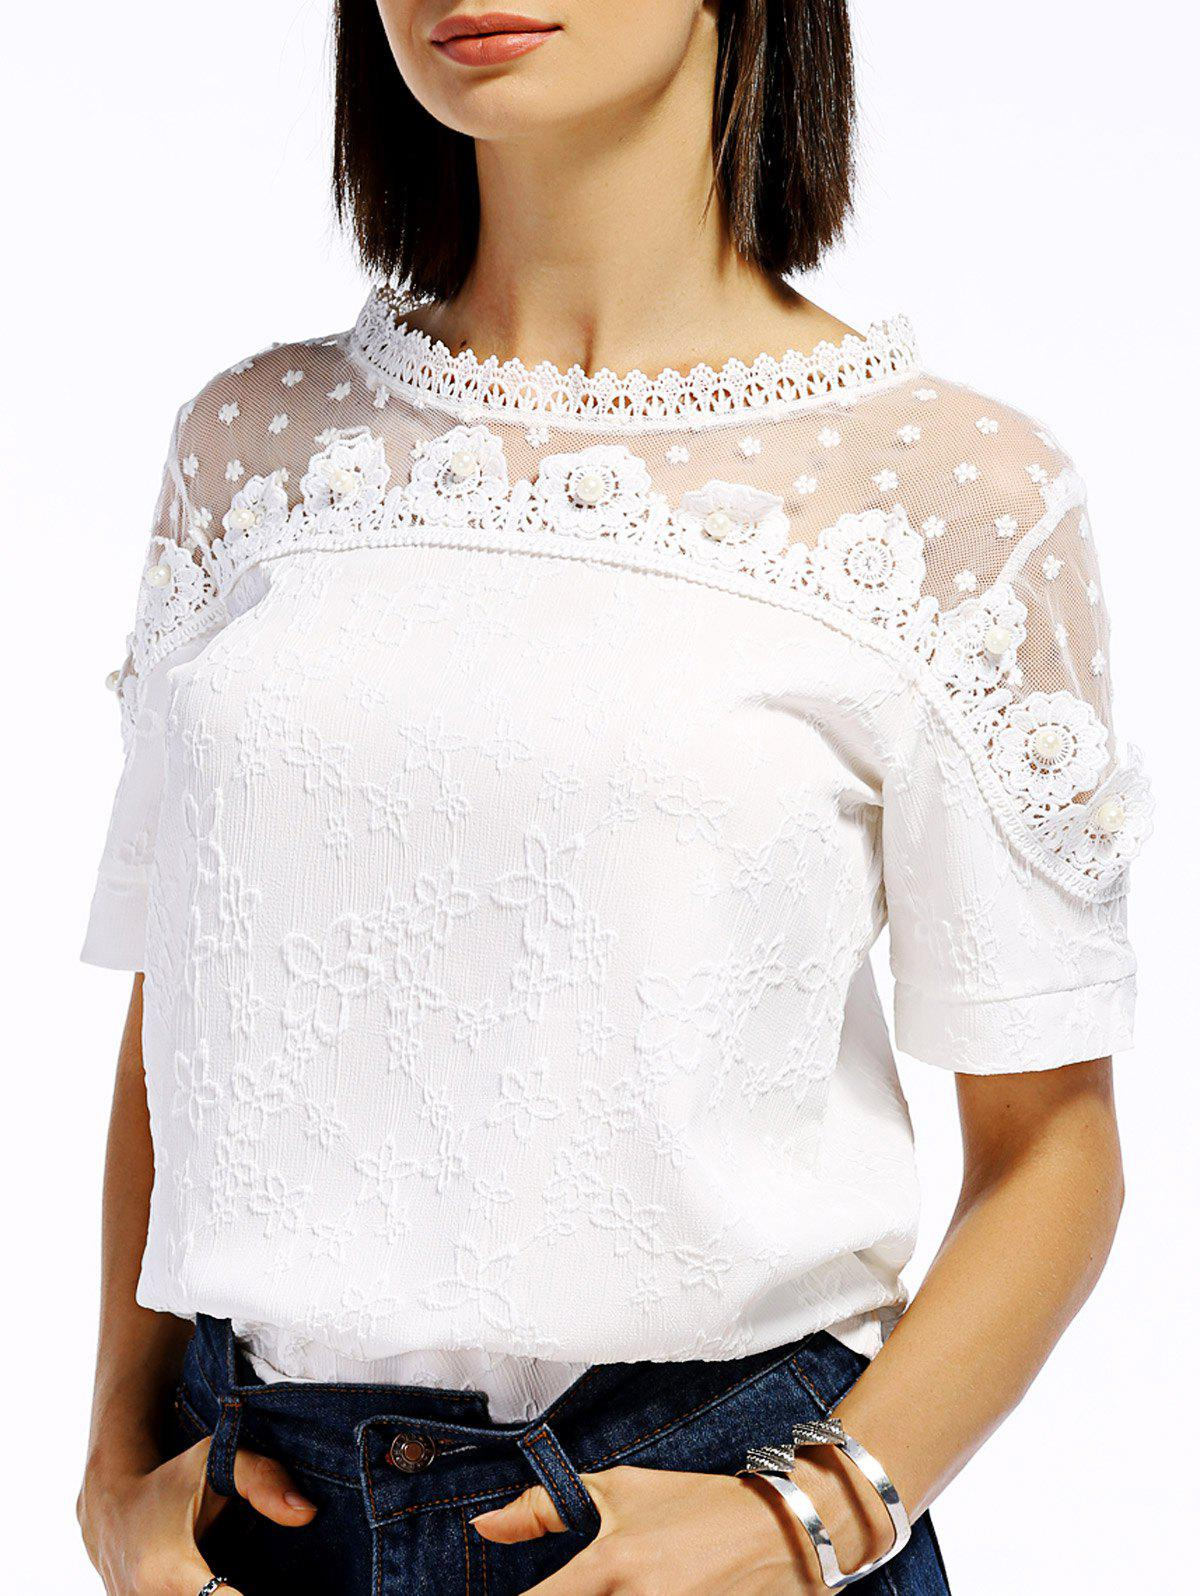 Sweet Women's Short Sleeve Lace Spliced Flower Pattern Blouse